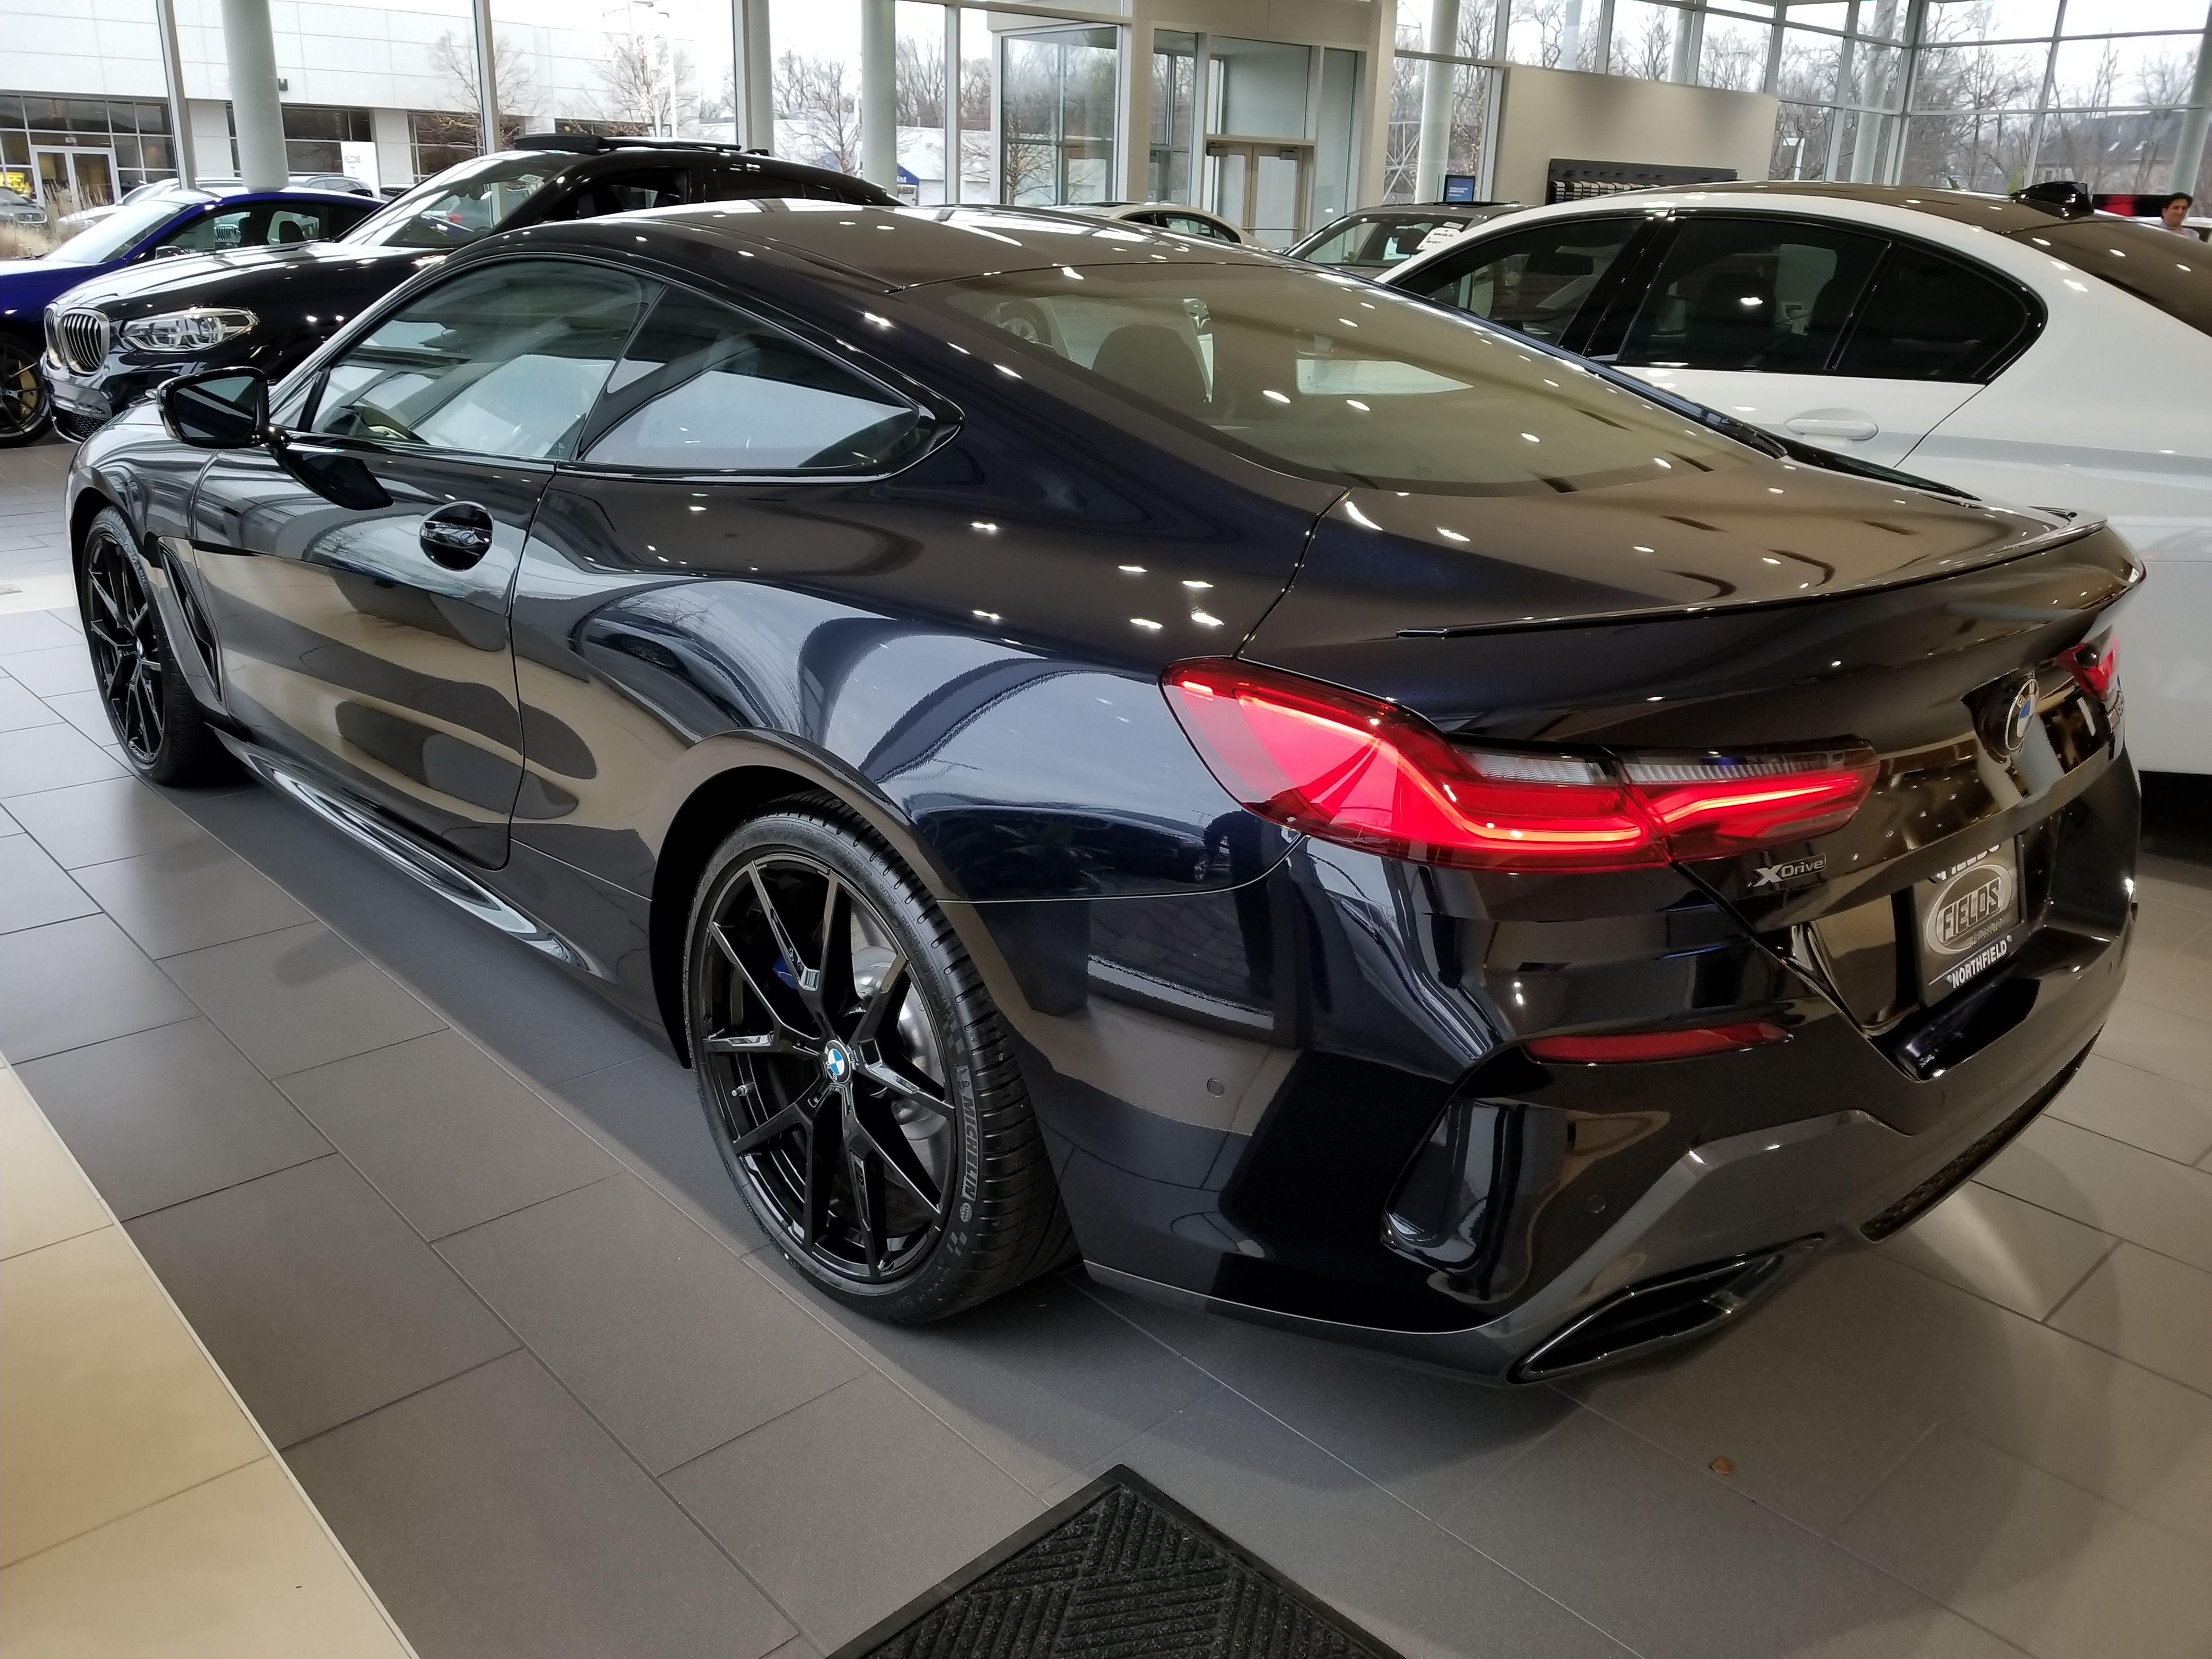 We Recently Acquired This Phenomenal 2019 Bmw M850i In Carbonblack Stock 45070 Which Is Now In Our Showroom Stop Bmw Sports Cars Luxury Bmw Dealership